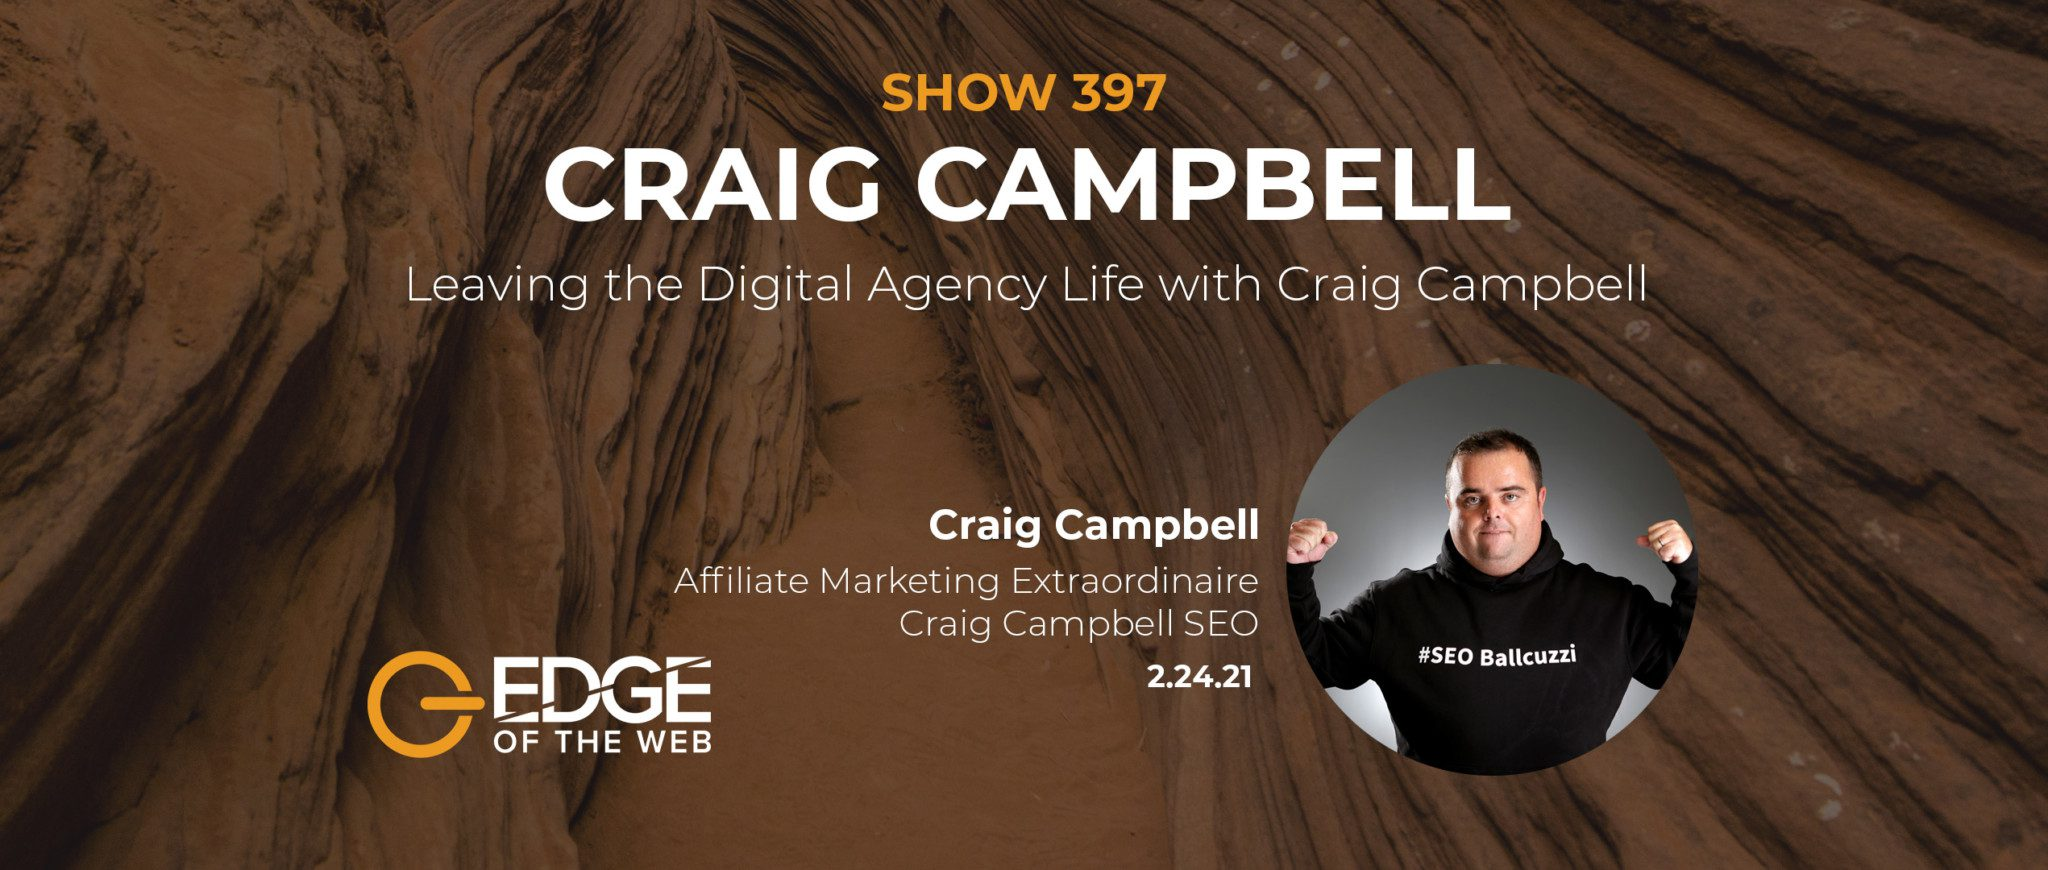 EP397 Craig Campbell EDGE Featured Image